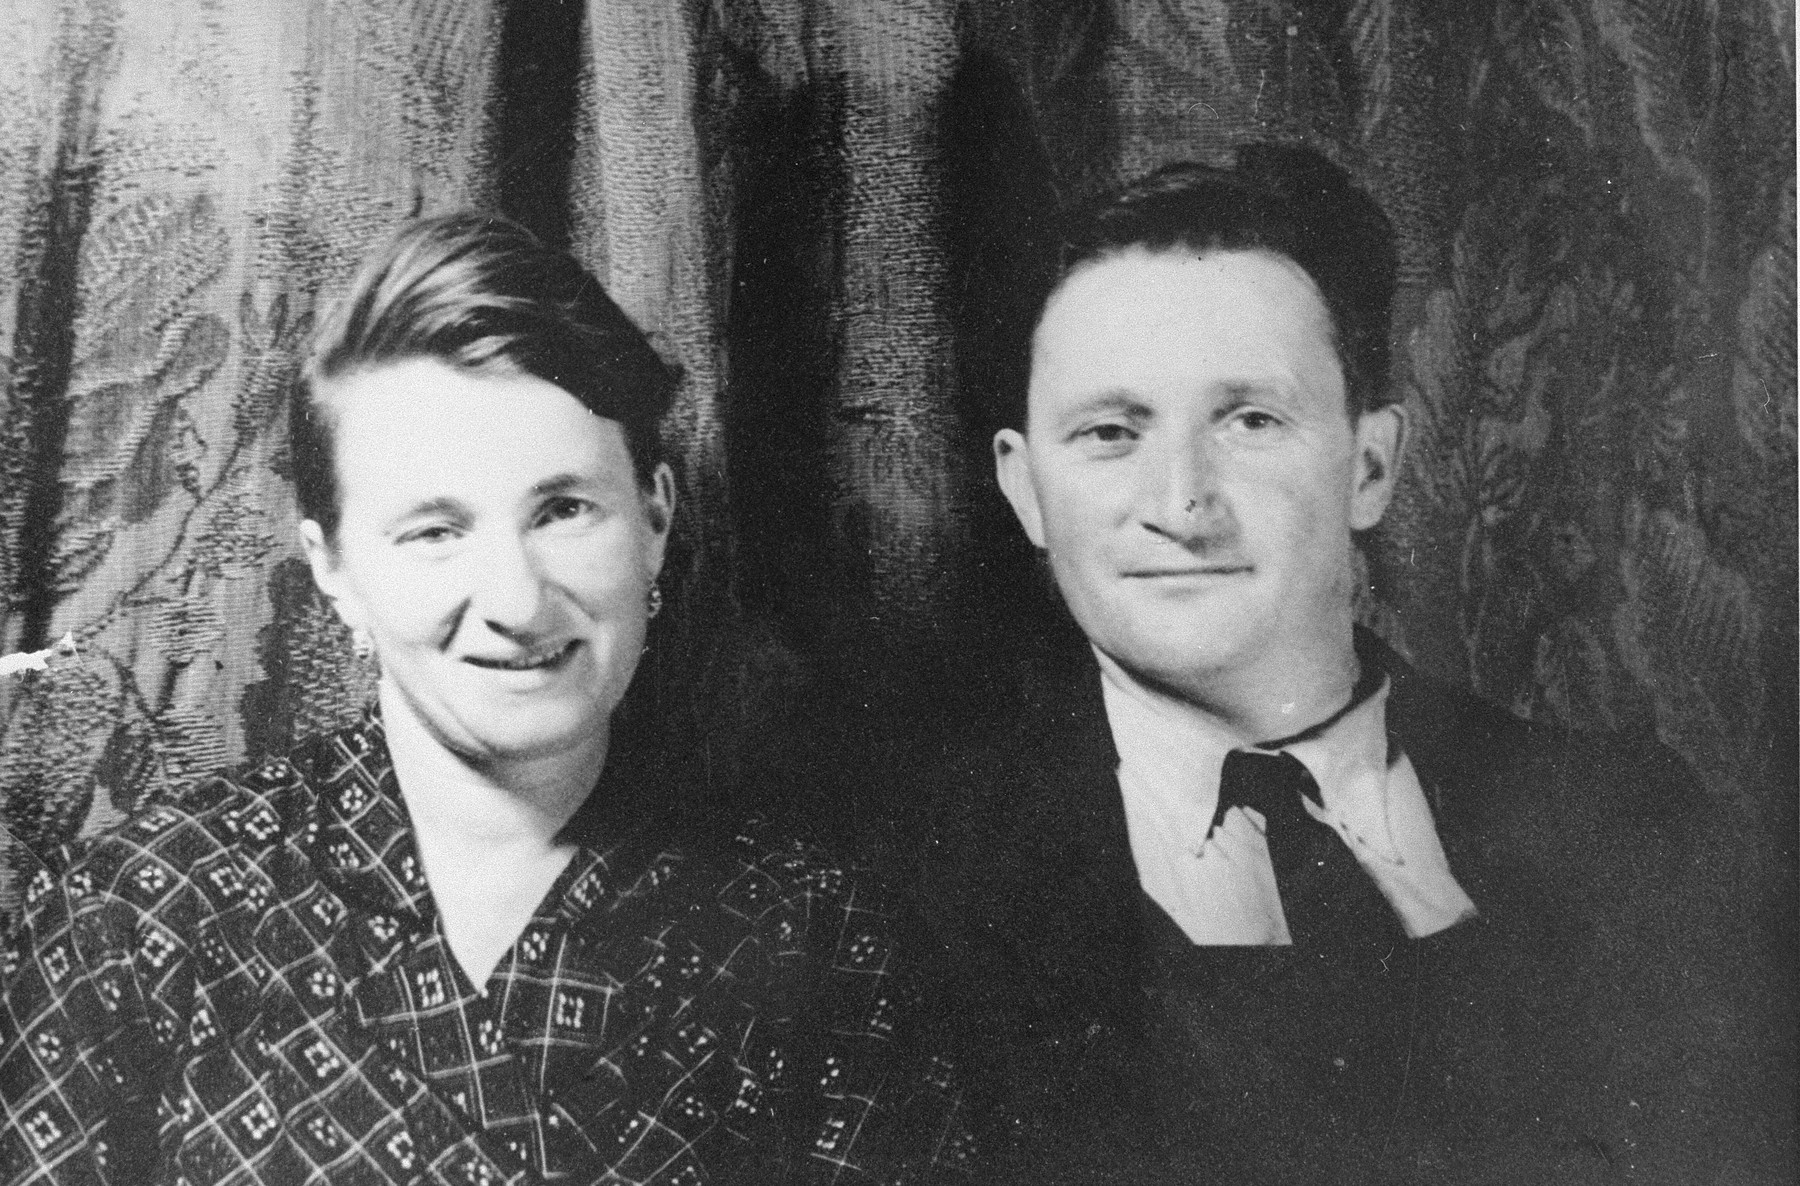 Portrait of a French rescuer couple, Batiste and Jeanne Lassalas, who hid two Jewish sisters, Jacqueline and Josette Glicenstein, on their farm in Saint Bonnet d'Orcival for two years during the German occupation of France.